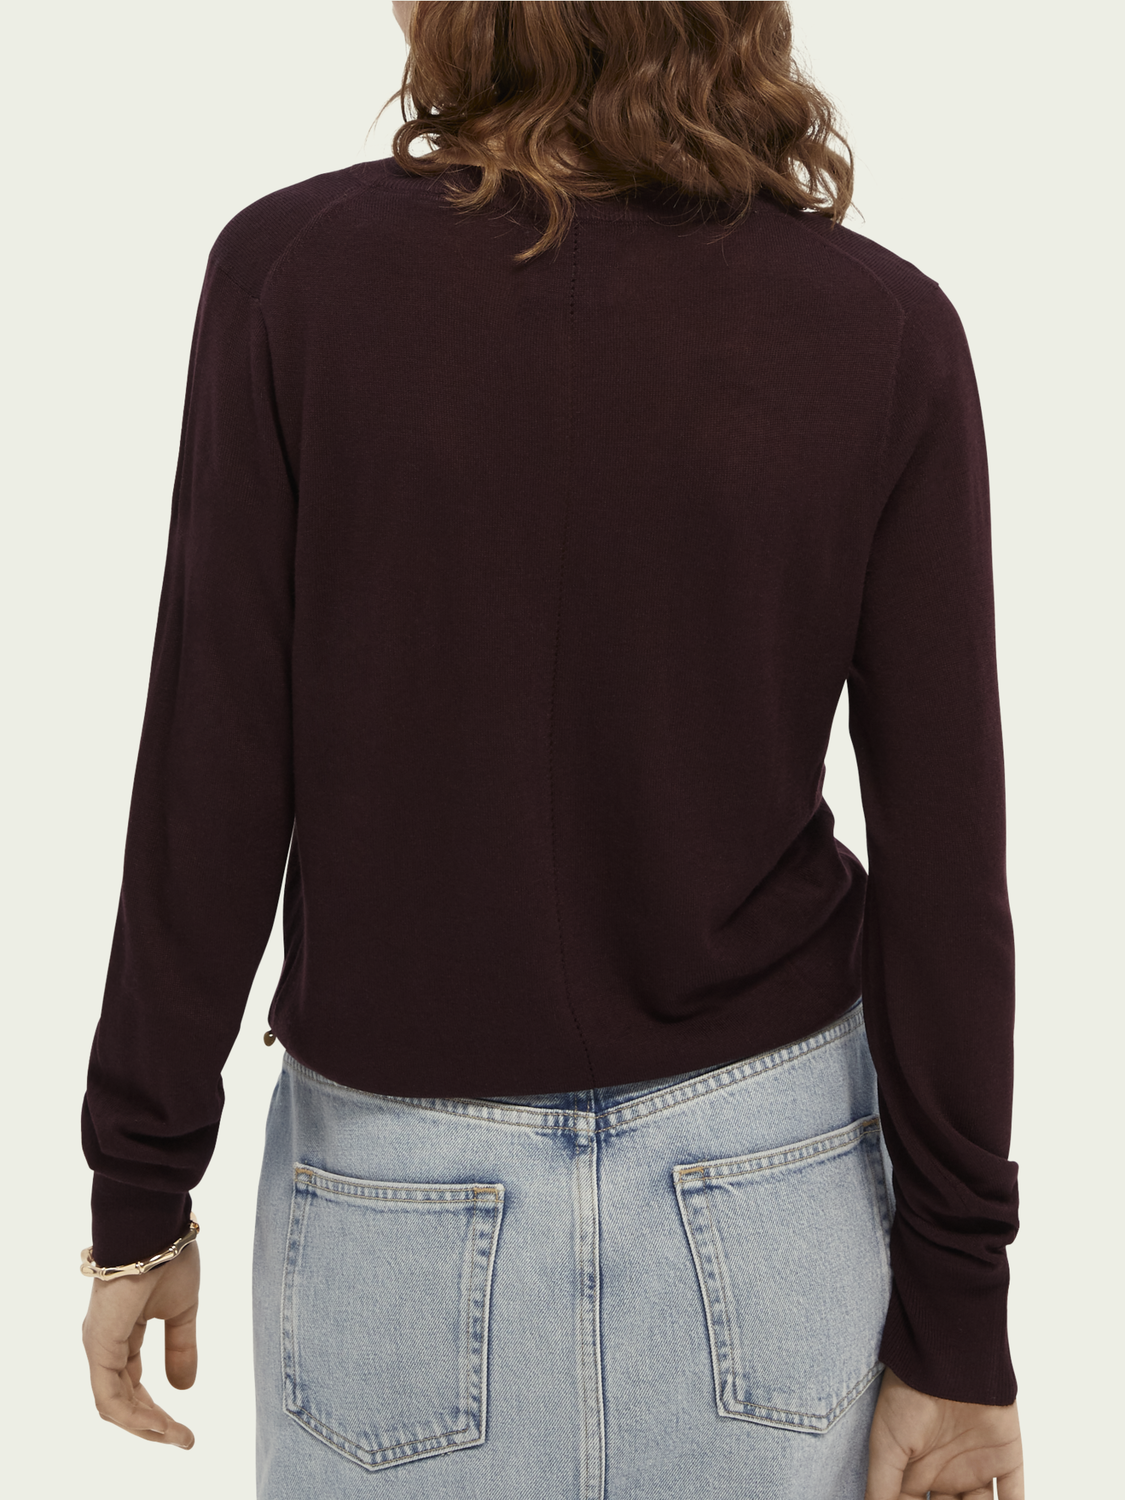 Women Lightweight V-neck pullover